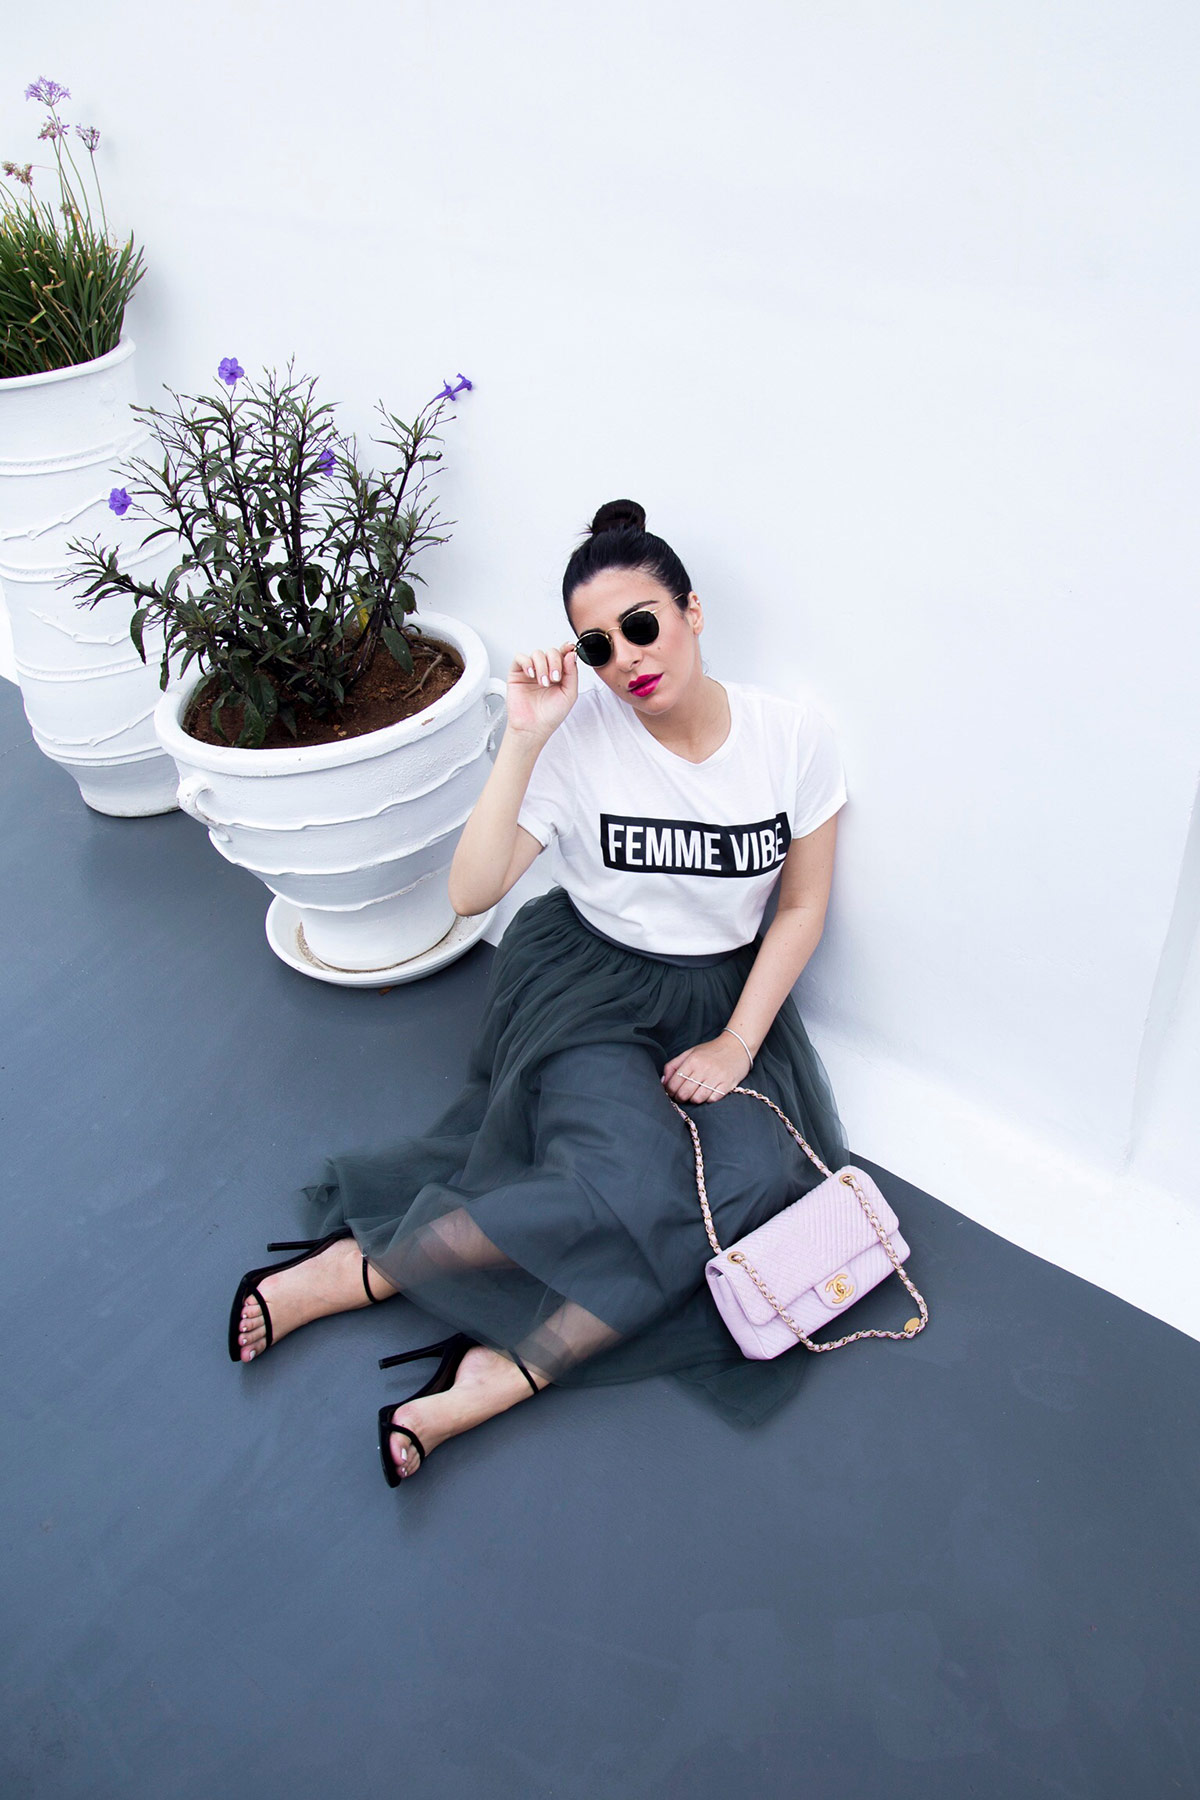 Tulle Skirt & How To Wear It by Stella Asteria | Fashion & Lifestyle Blogger